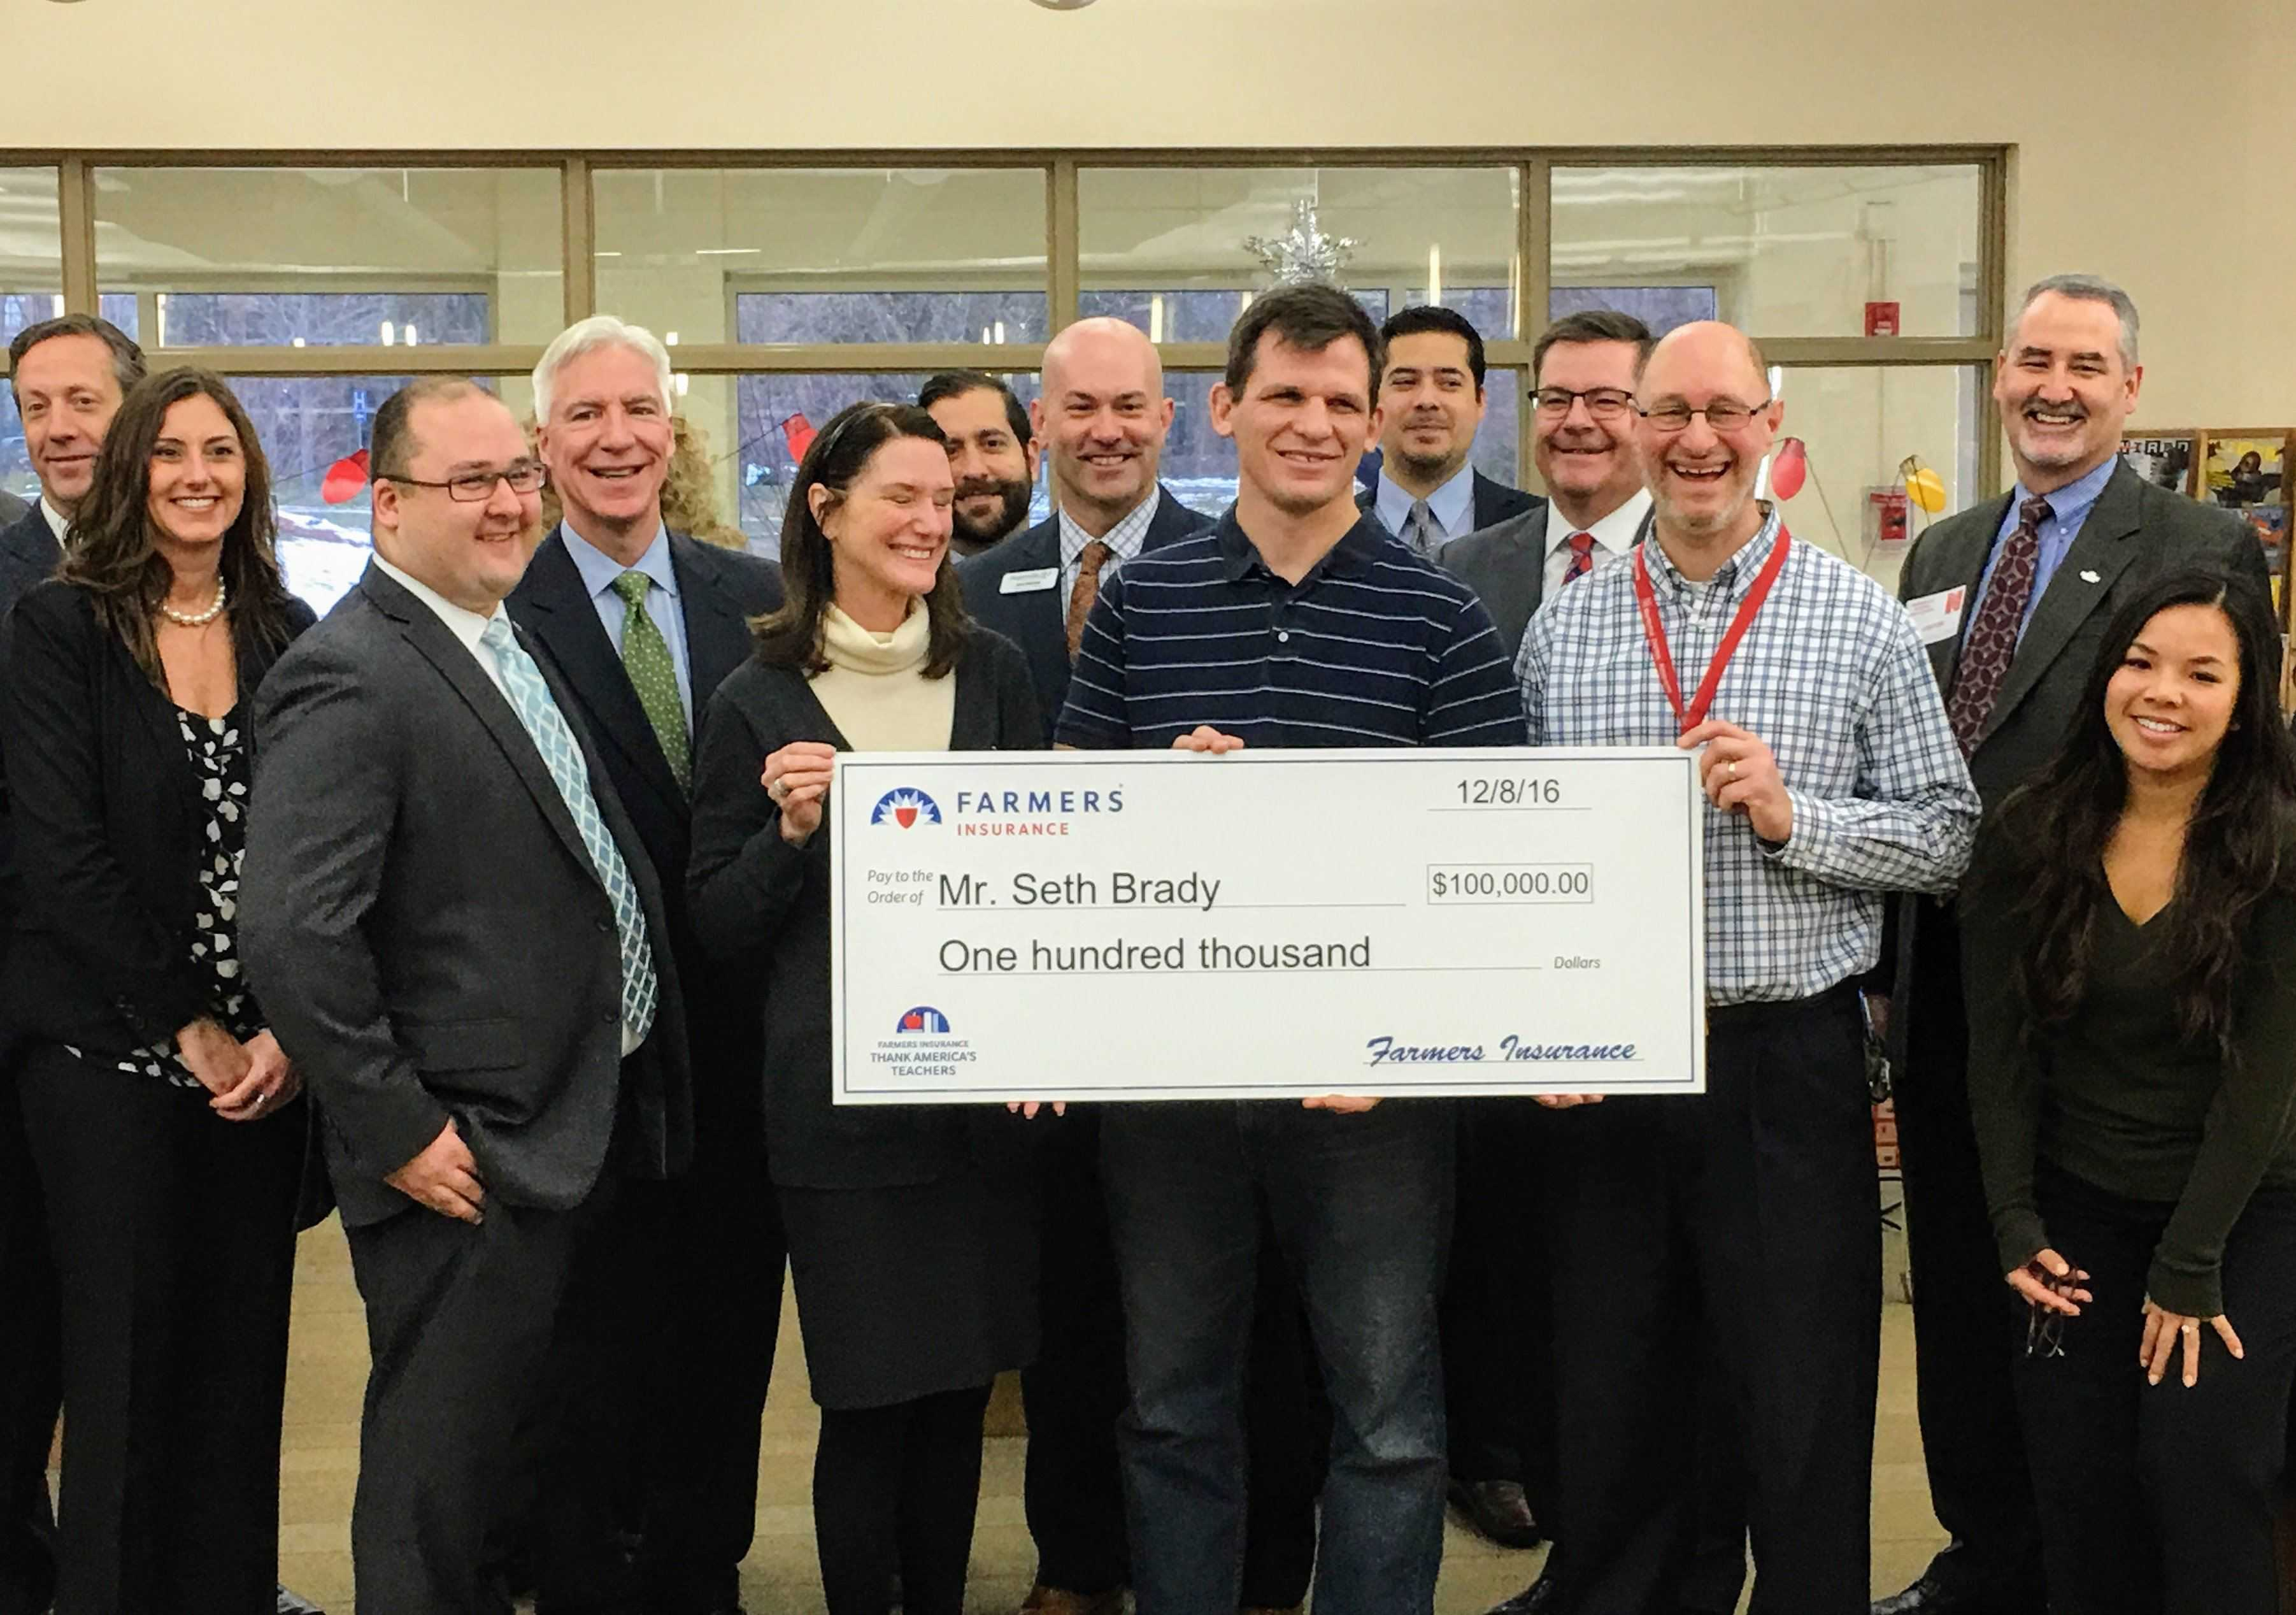 Social studies teachers Seth Brady and Randy Smith hold a check for $100,000 presented by Farmers Insurance. The money will be used to fund Brady's Global Scholar initiative in Illinois. The program has also received state legislative support.